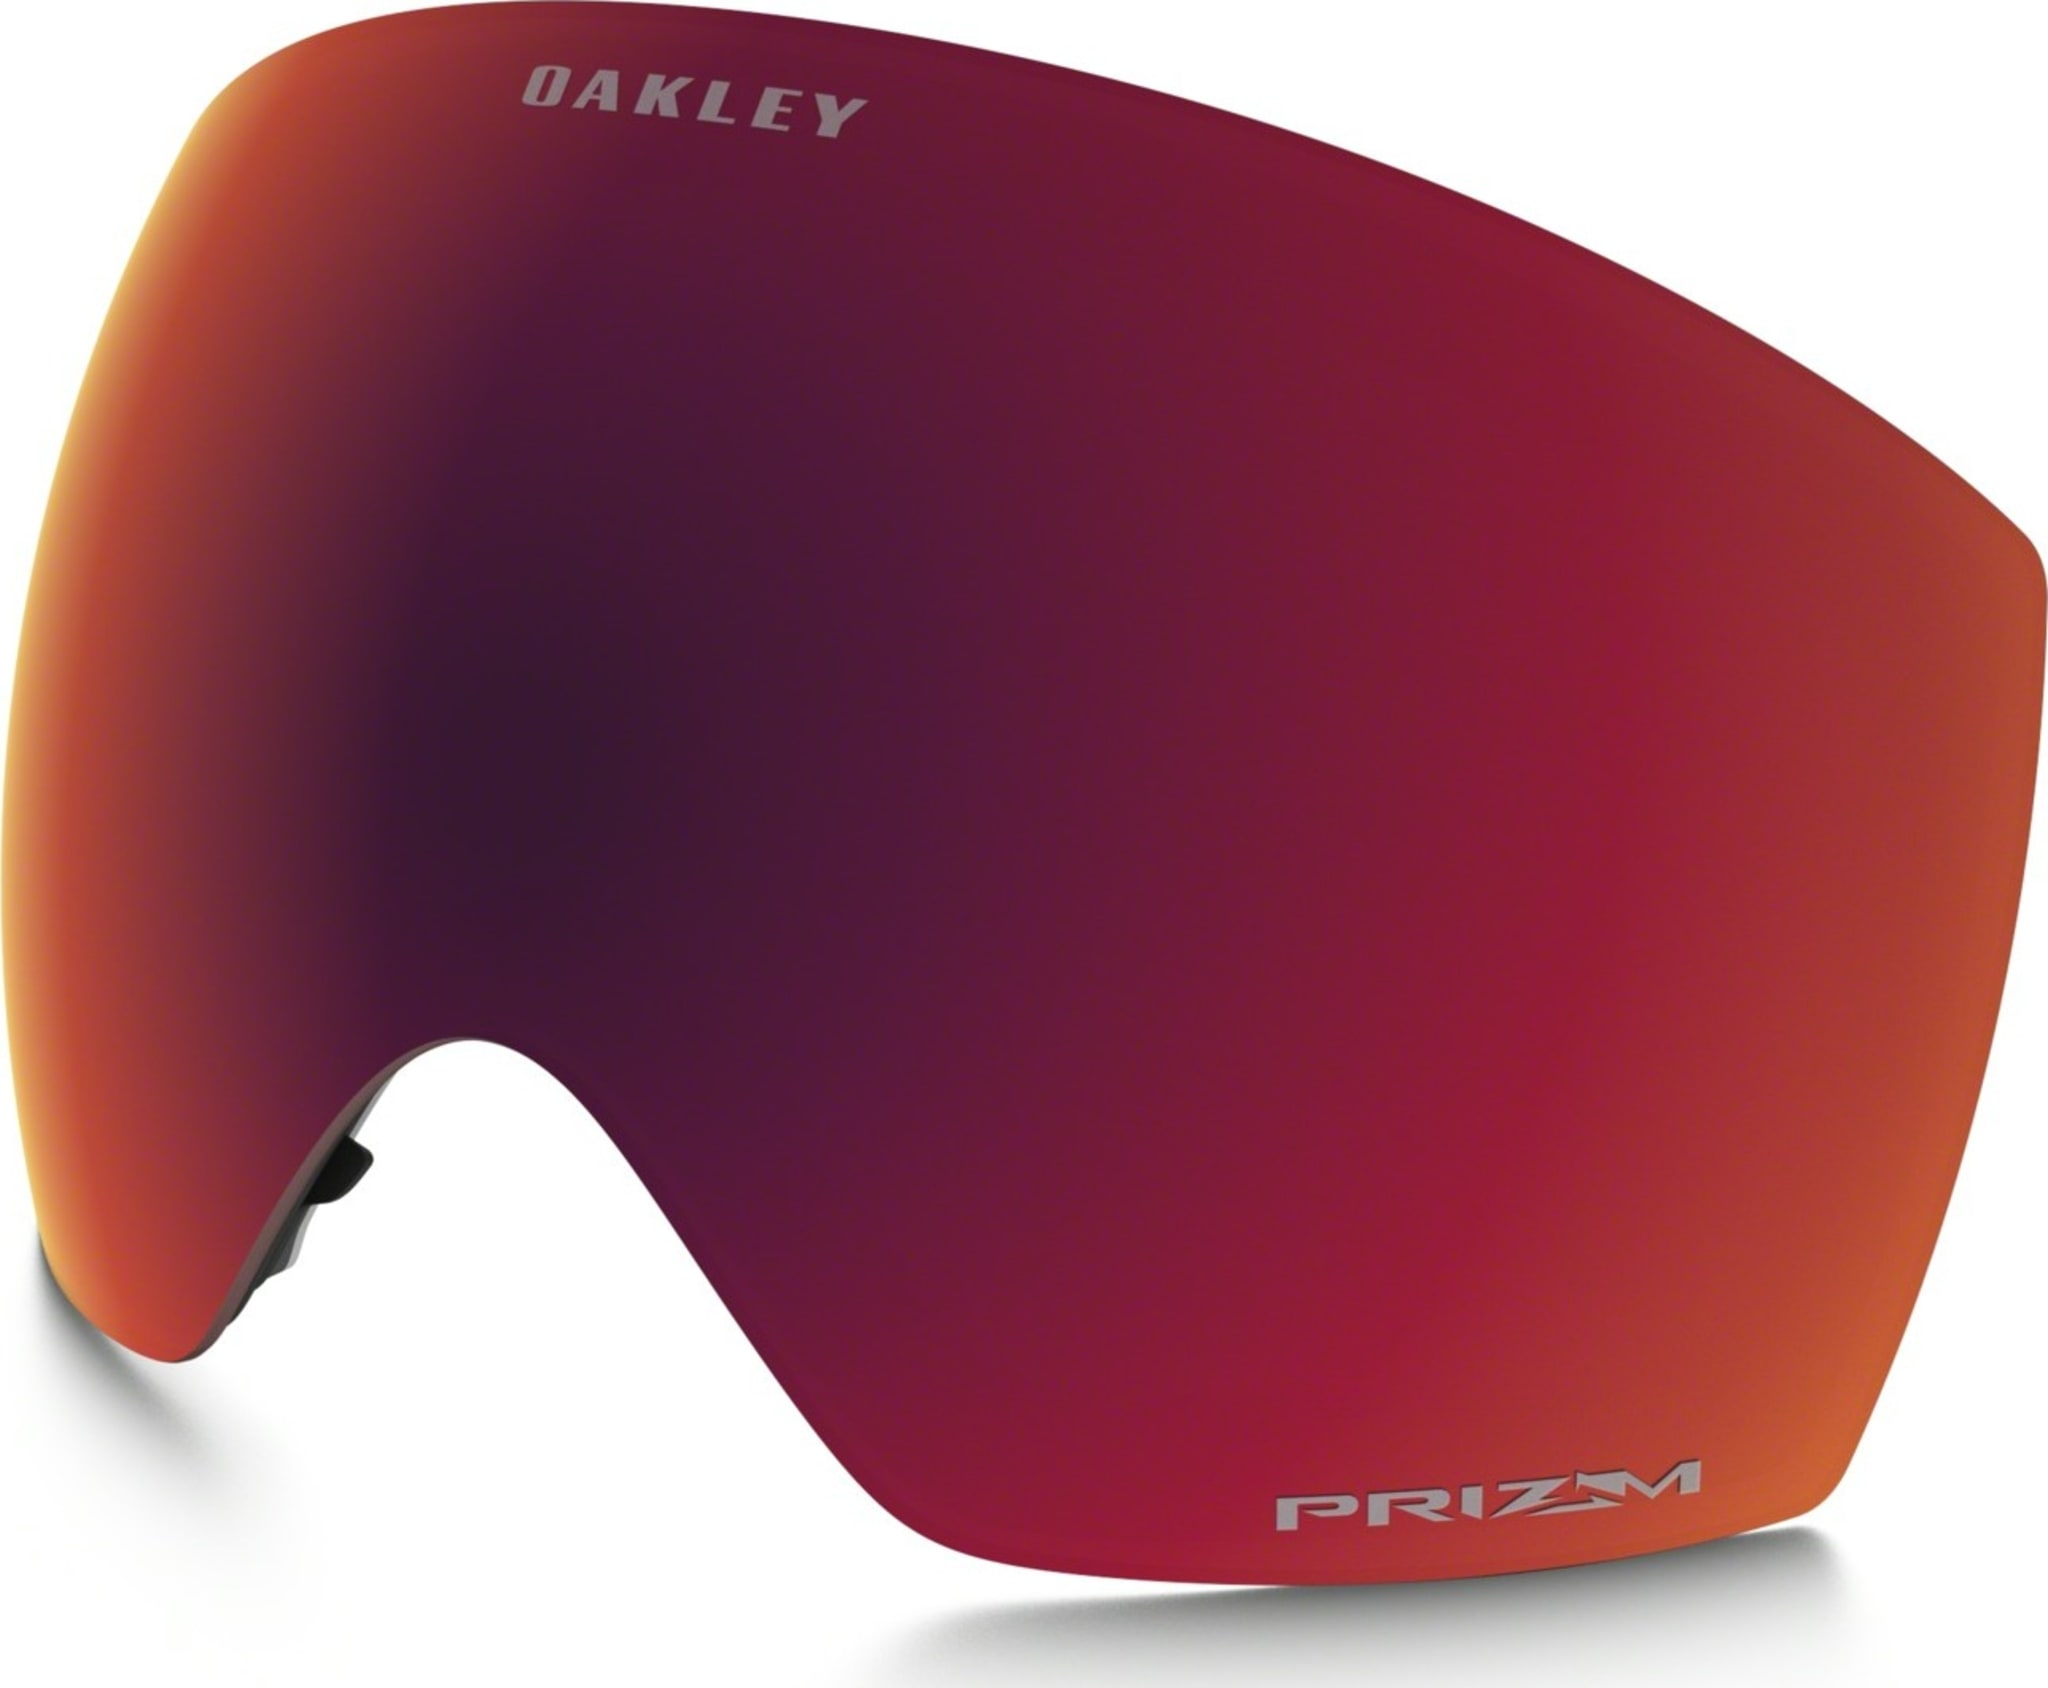 Reservelinser til Oakley Flight Deck.